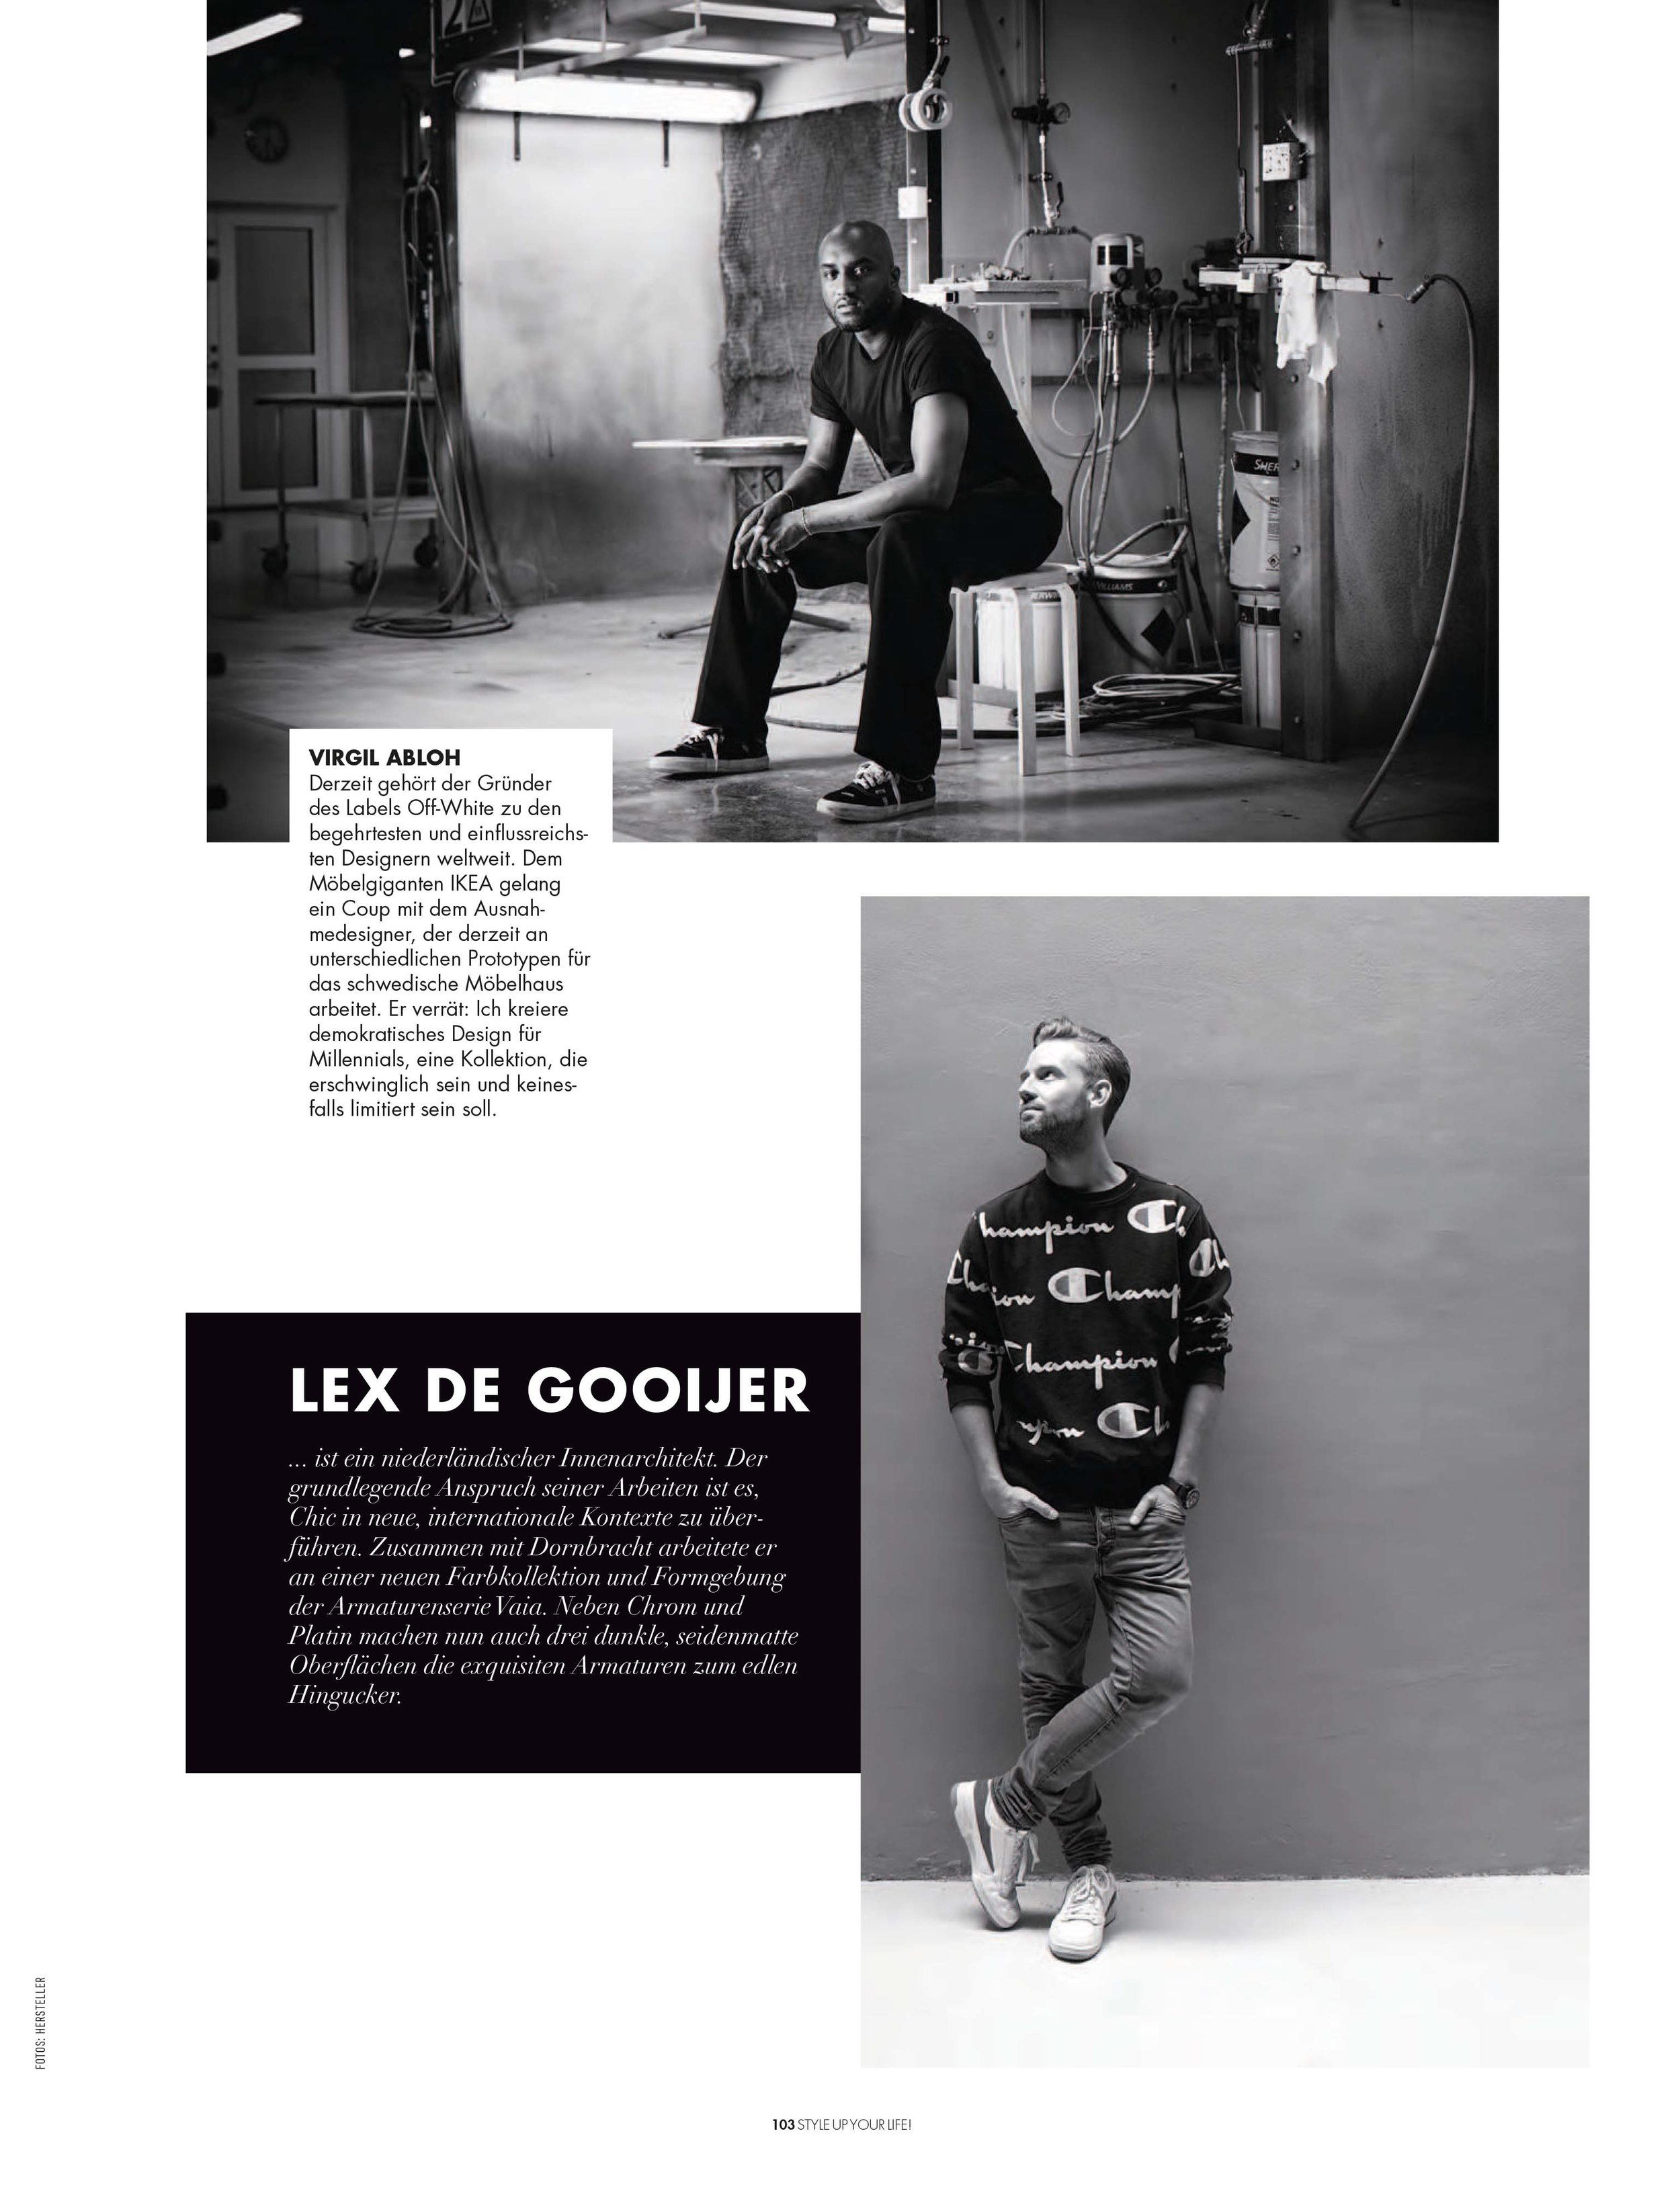 005 Style up your life living designers to watch 2019 lex de Gooijer interiors virgil Abloh.jpg